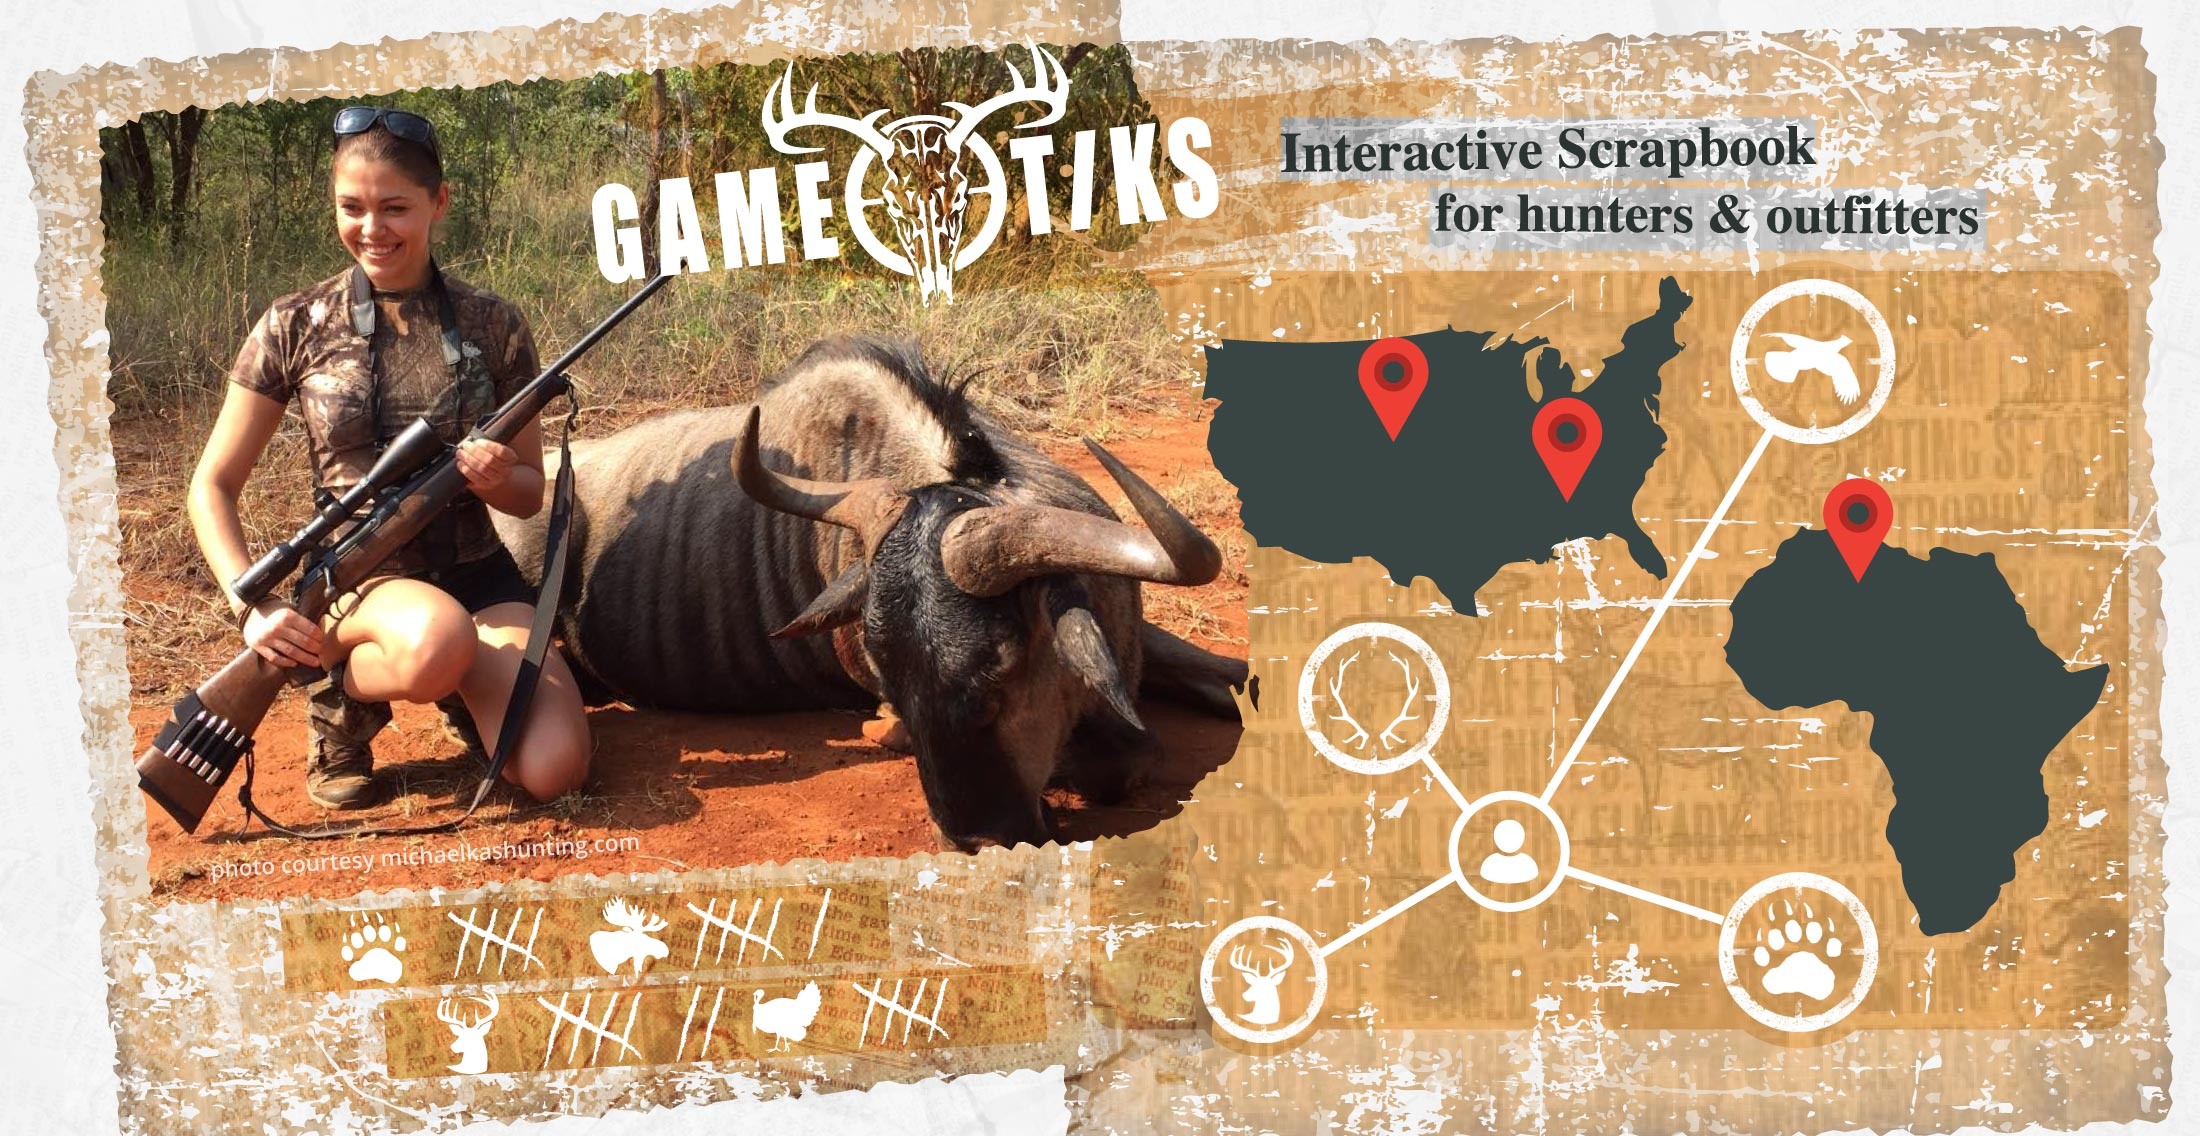 Interactive Scrapbook for Hunters & Outfitters